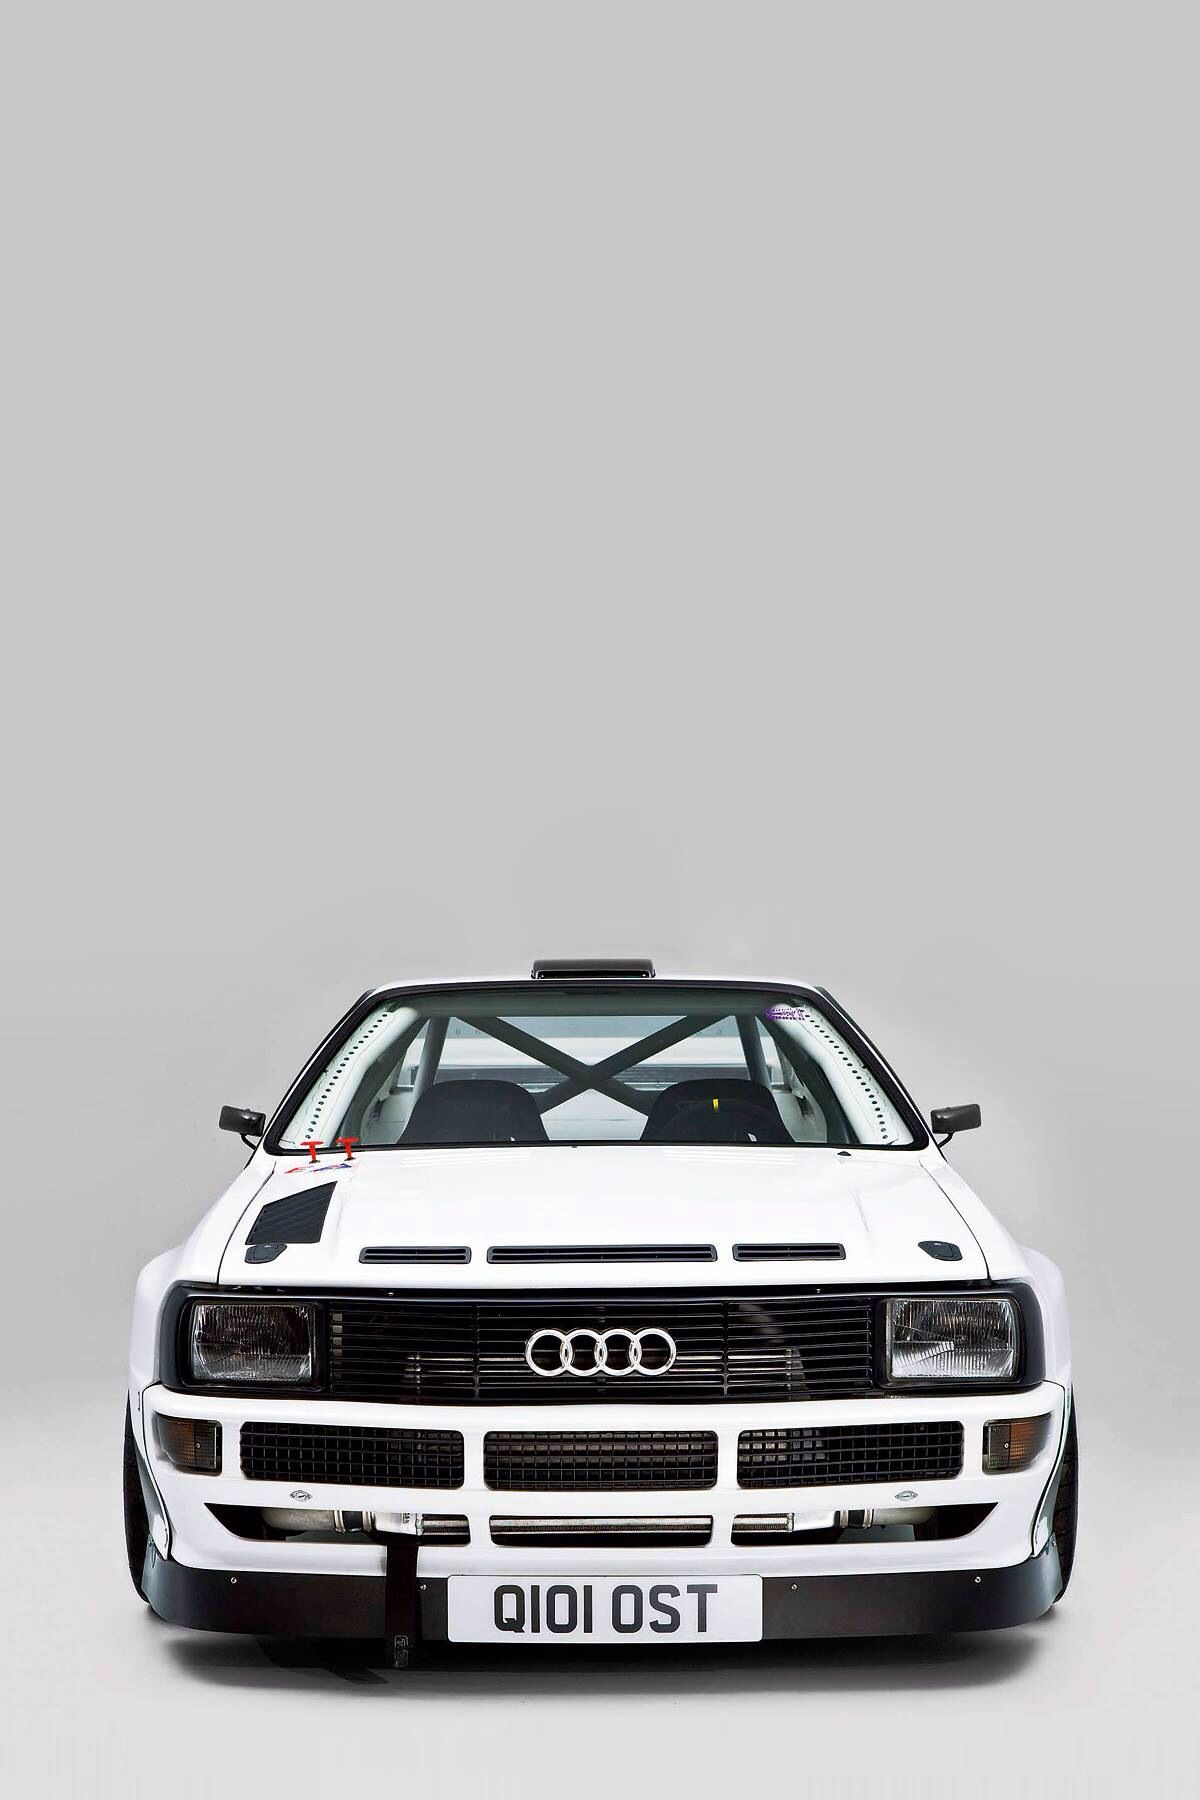 Audi Quattro Audi Sport Quattro one of the few cars ever to have to